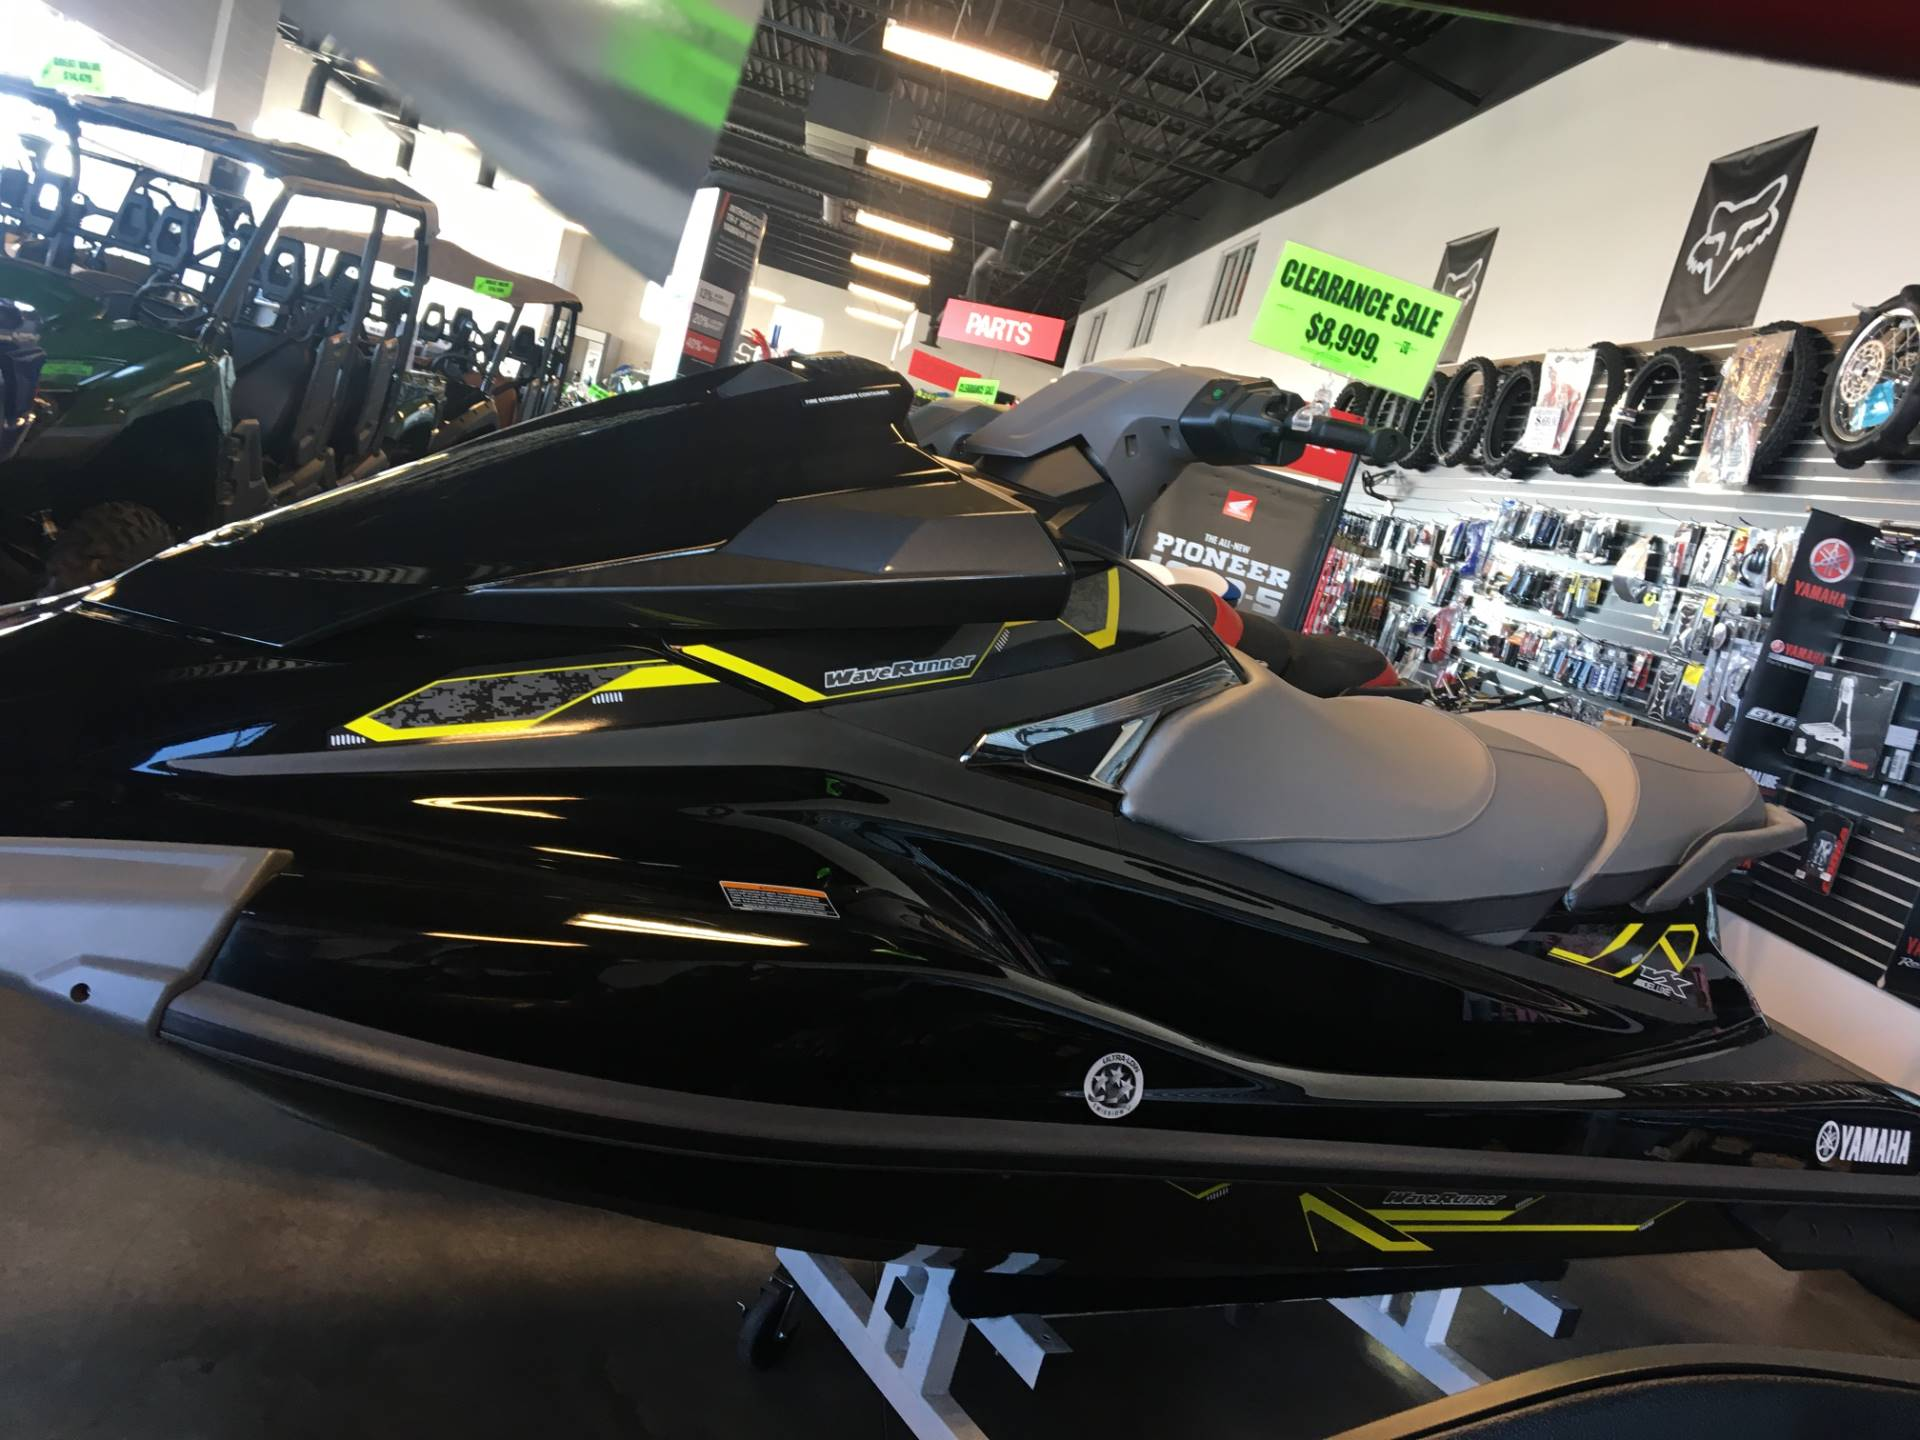 2015 Yamaha VX Deluxe for sale 87692